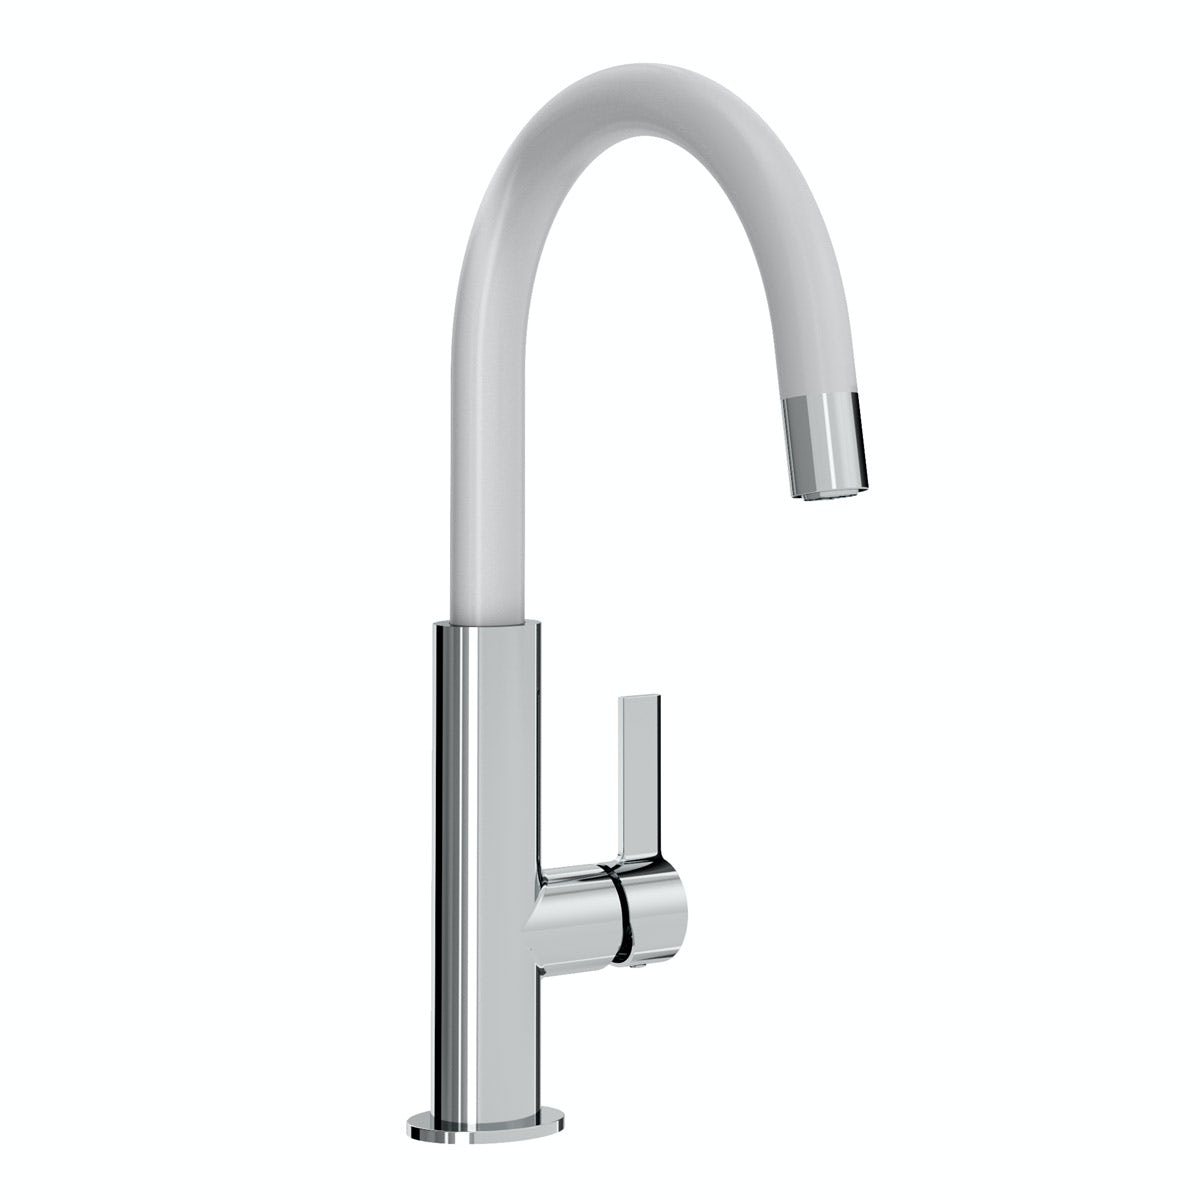 Bristan Melba white kitchen tap